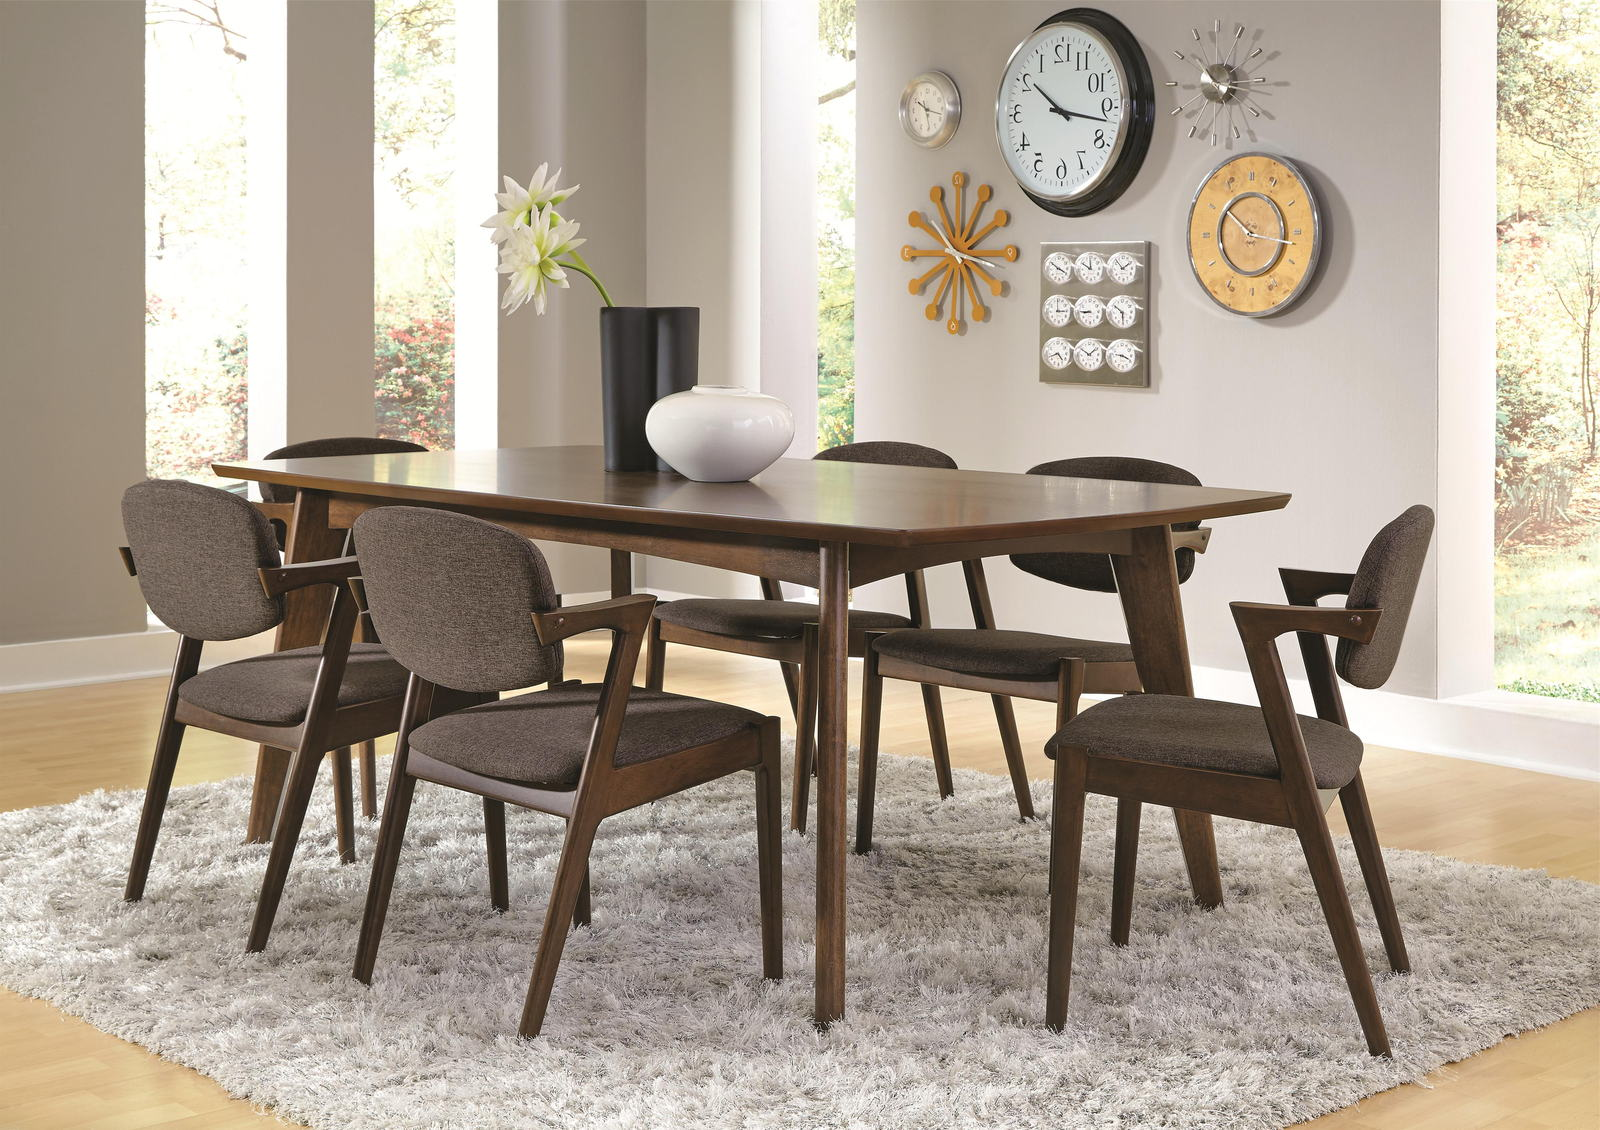 MALONE 7 PIECE DINING ROOM SET | Marjen of Chicago | Chicago ...